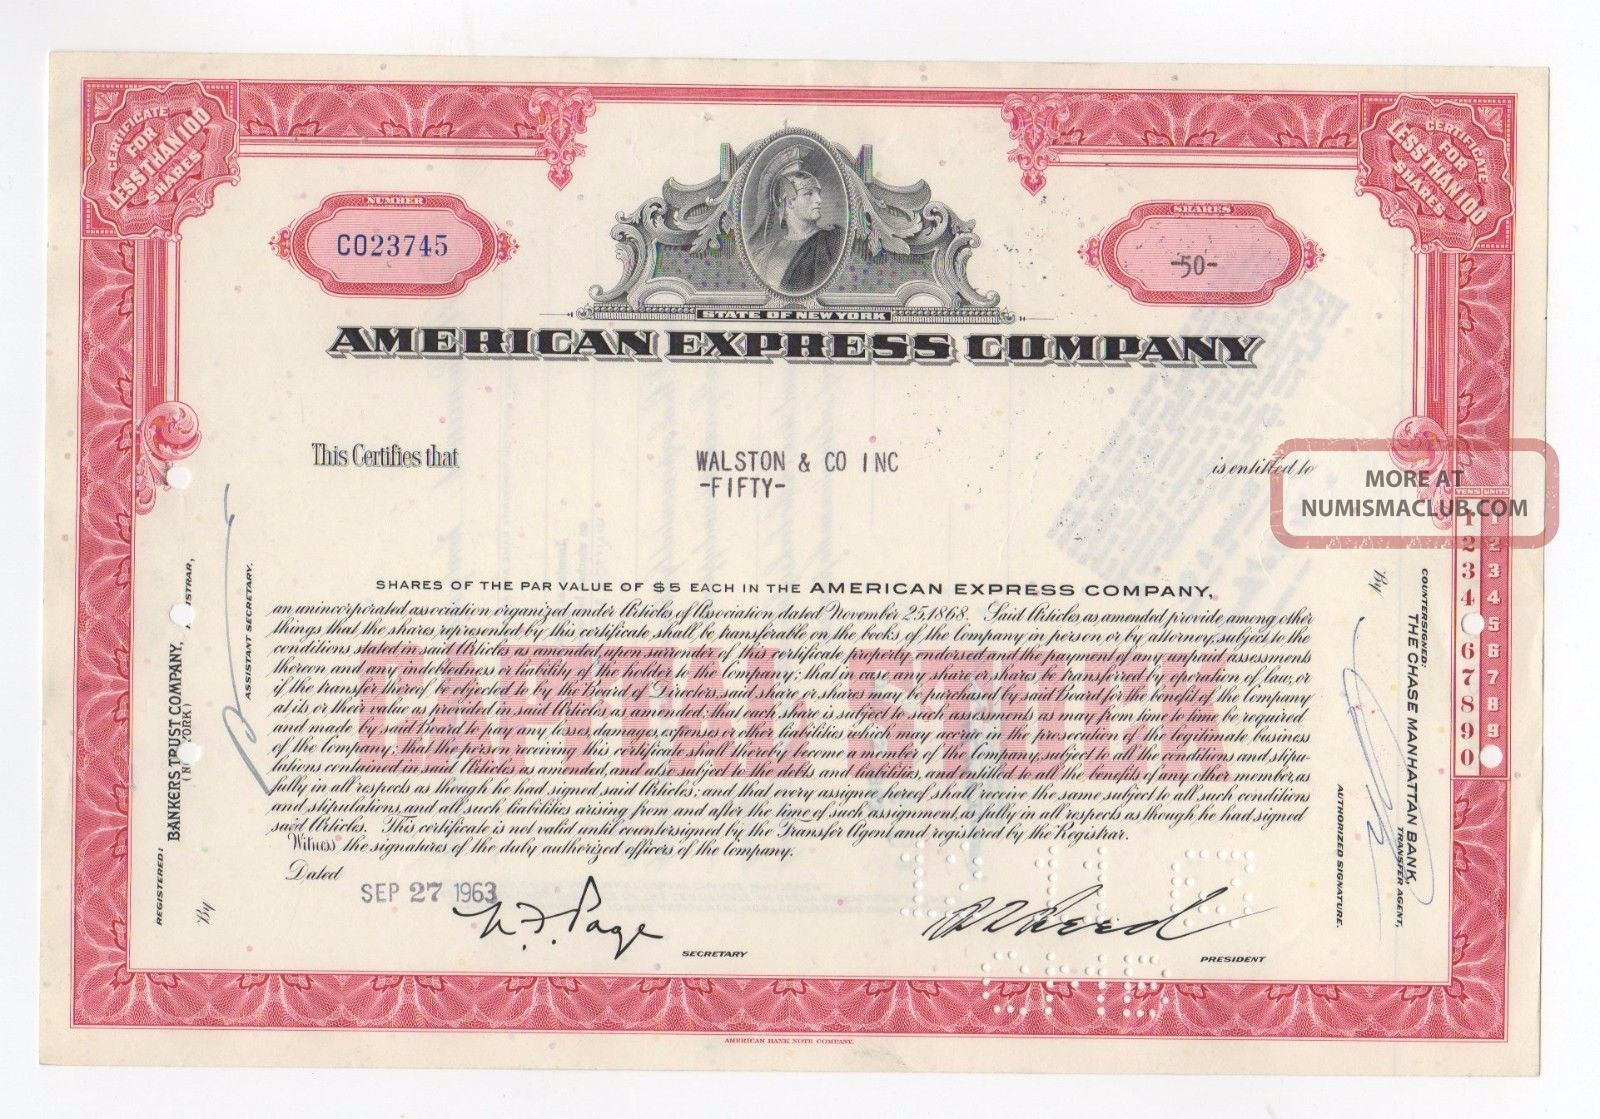 American express stock options